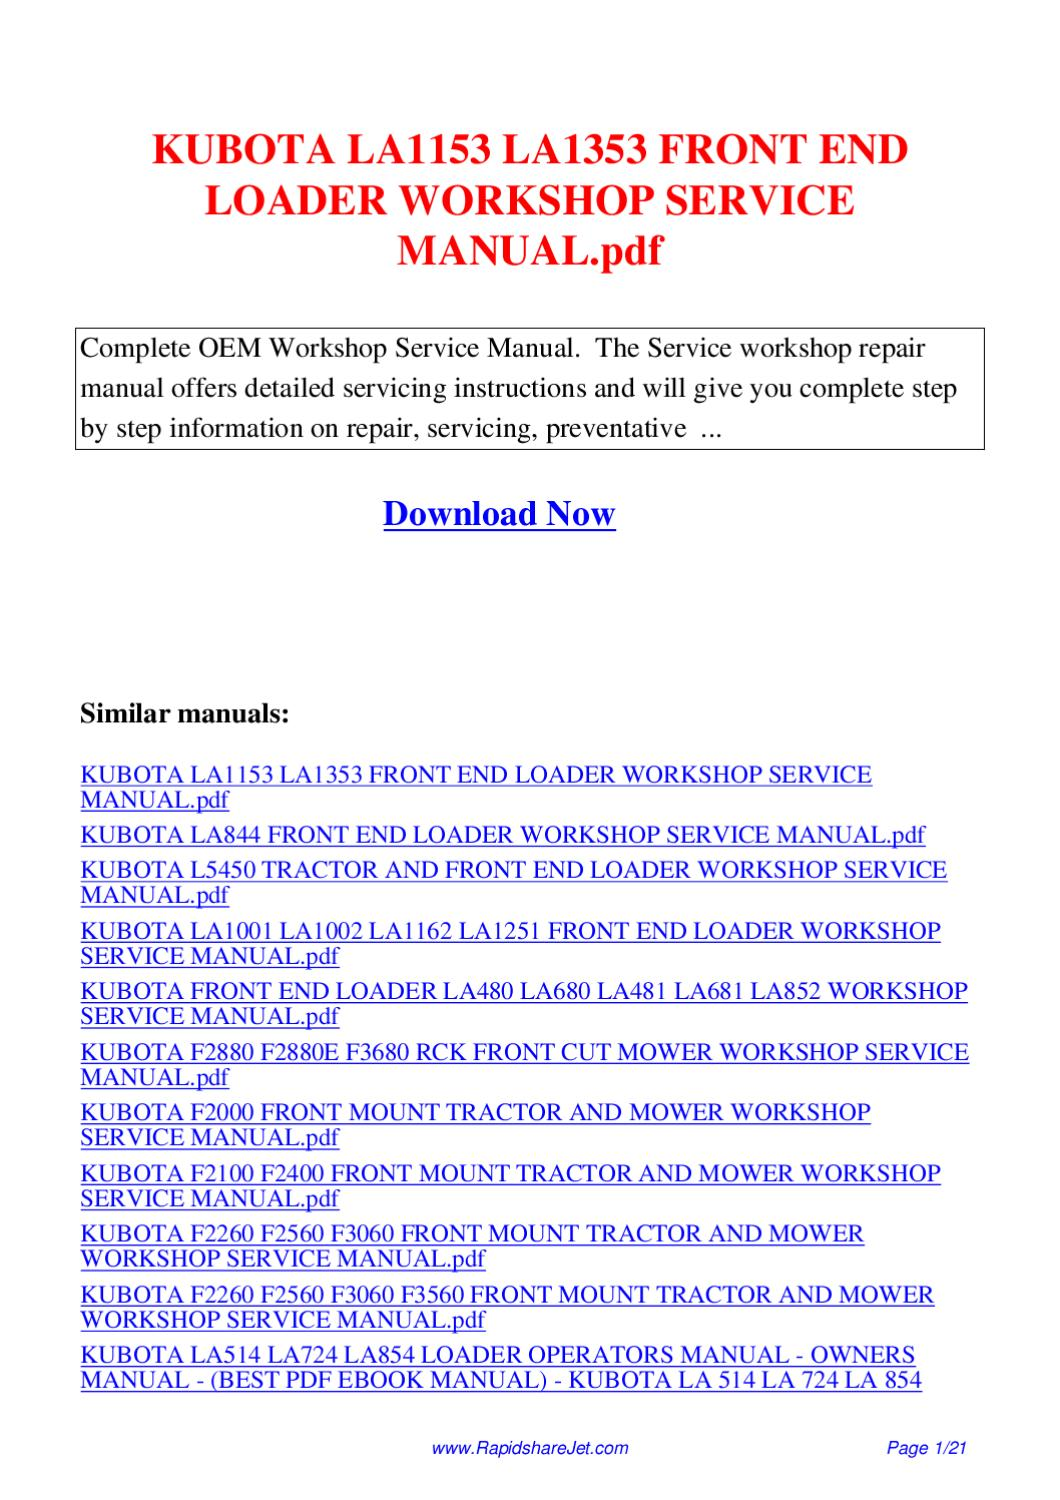 KUBOTA LA1153 LA1353 FRONT END LOADER WORKSHOP SERVICE MANUAL pdf by Hong  Lee - issuu